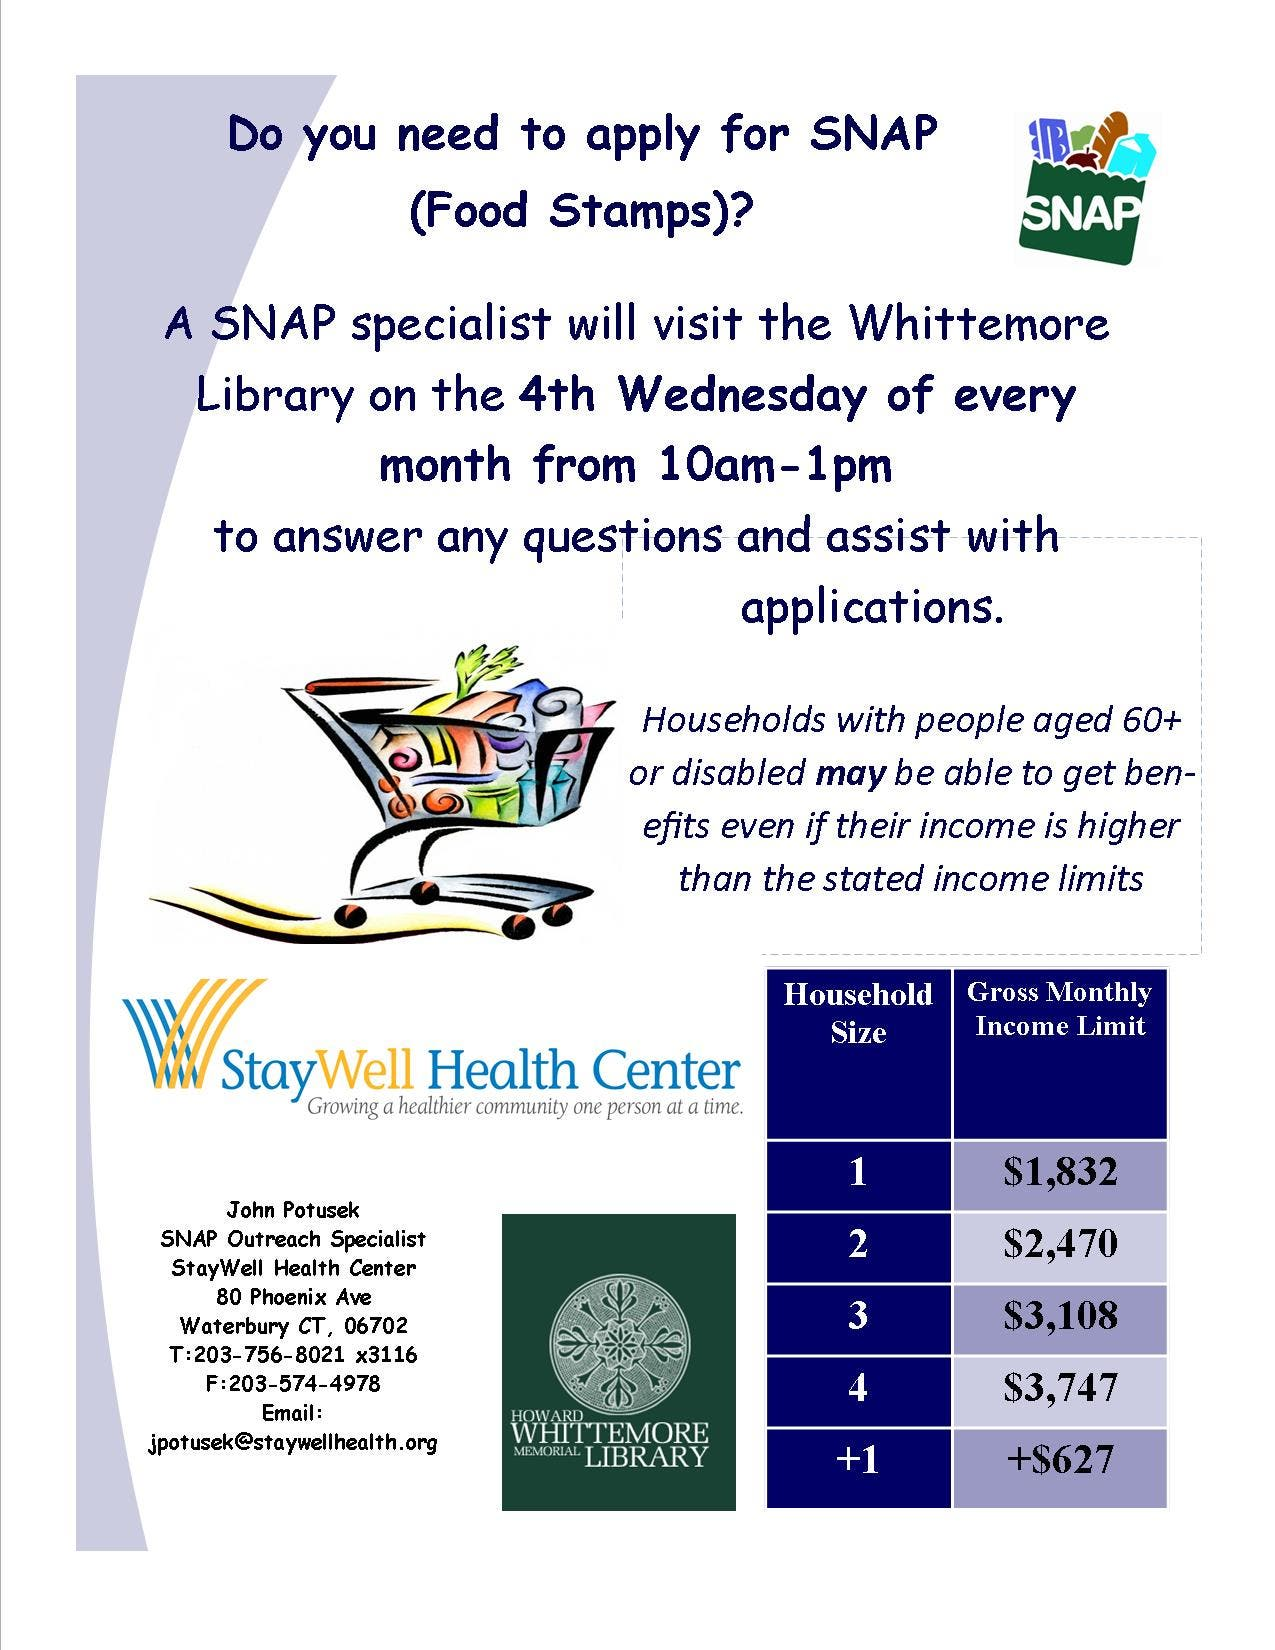 Howard Whittemore Library To Offer Snap Application Assistance